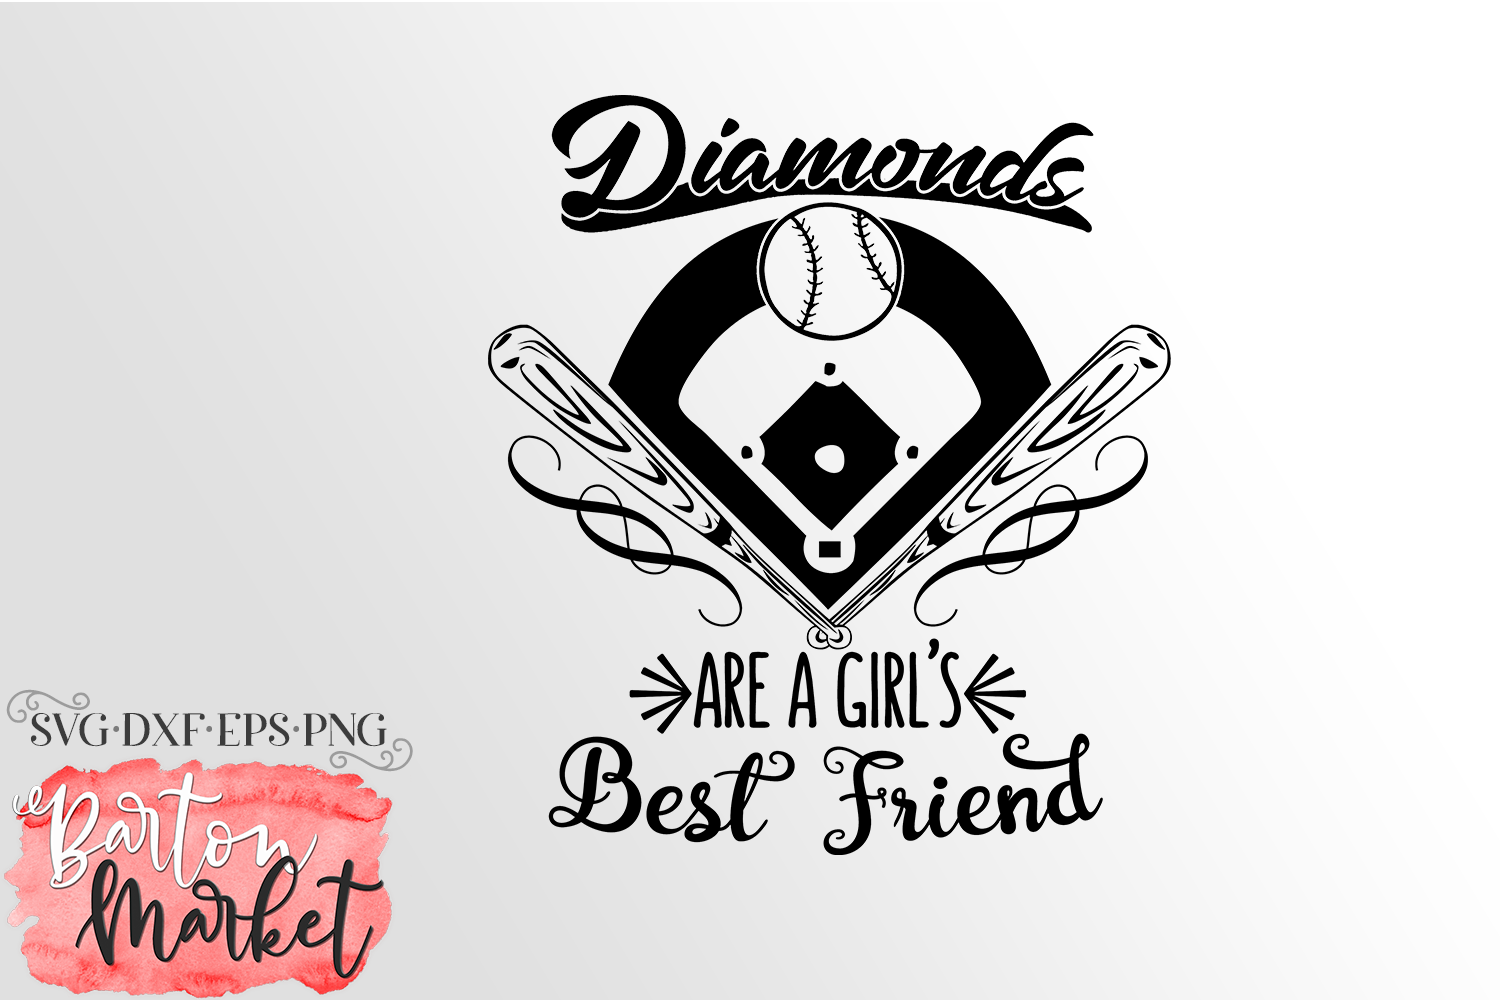 Diamonds Are A Girl's Best Friend SVG DXF EPS PNG example image 2